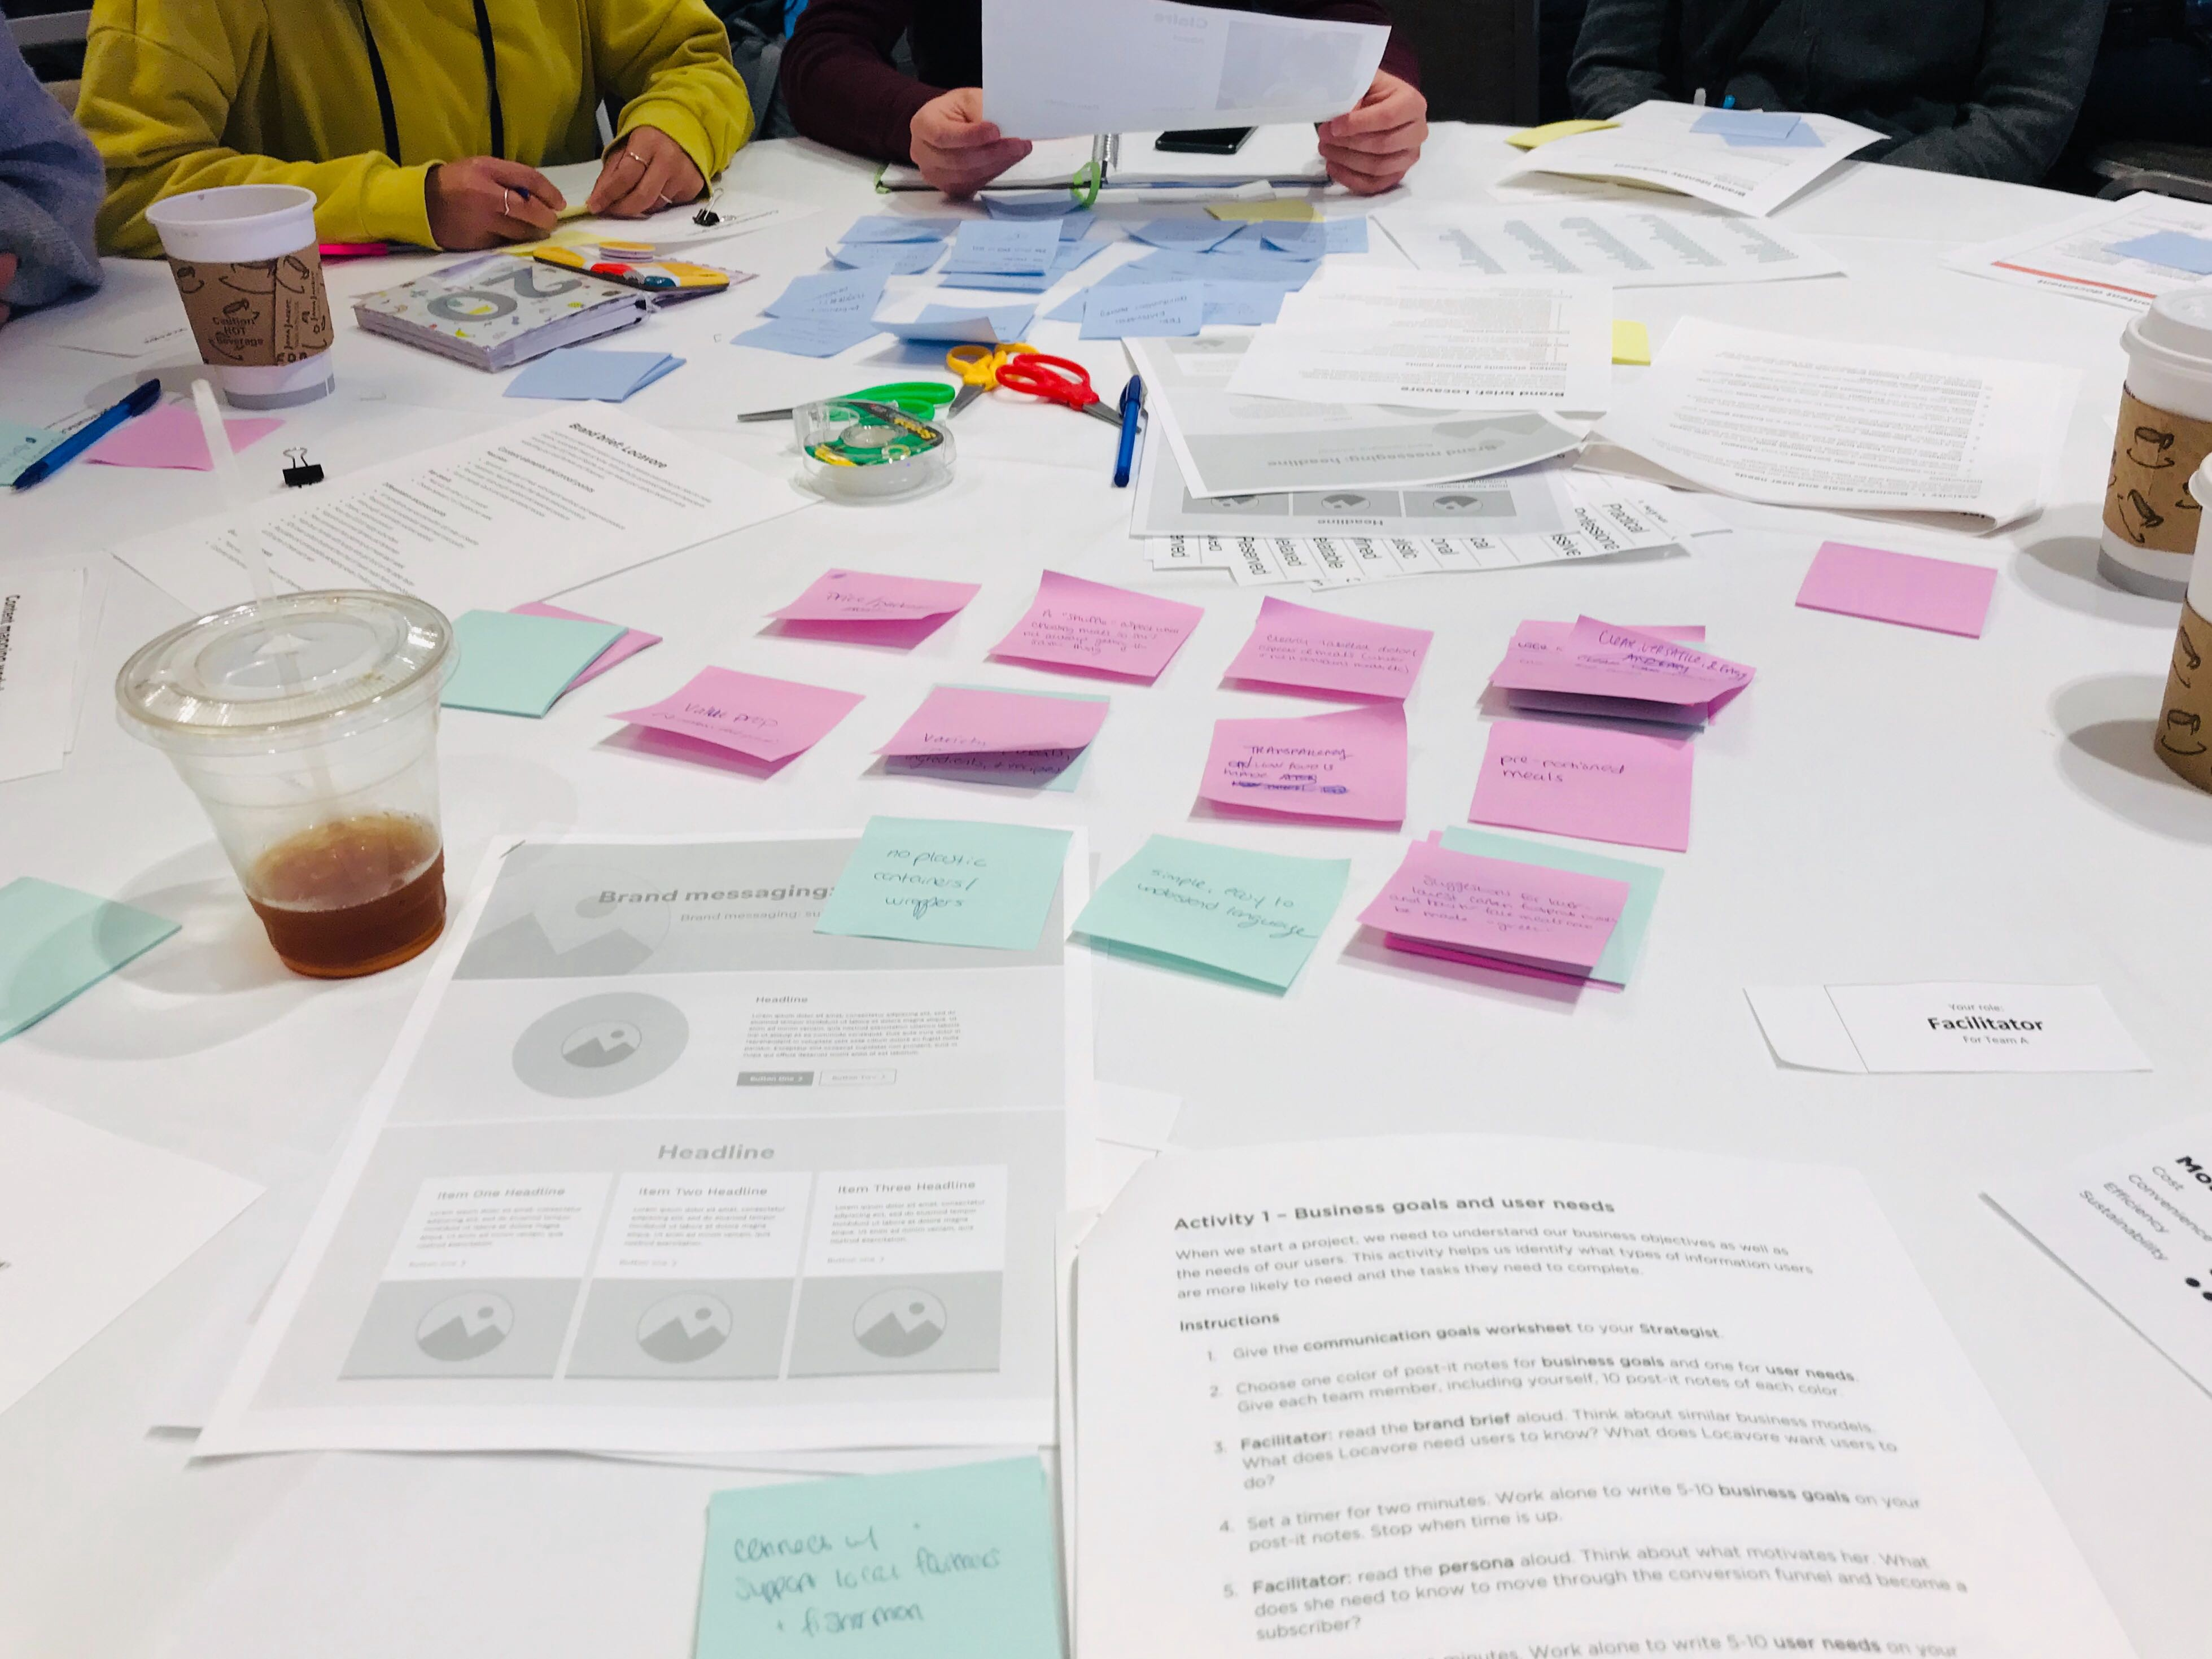 A workshop table covered in pieces of paper, post-it notes, markers, scissors, and coffee cups